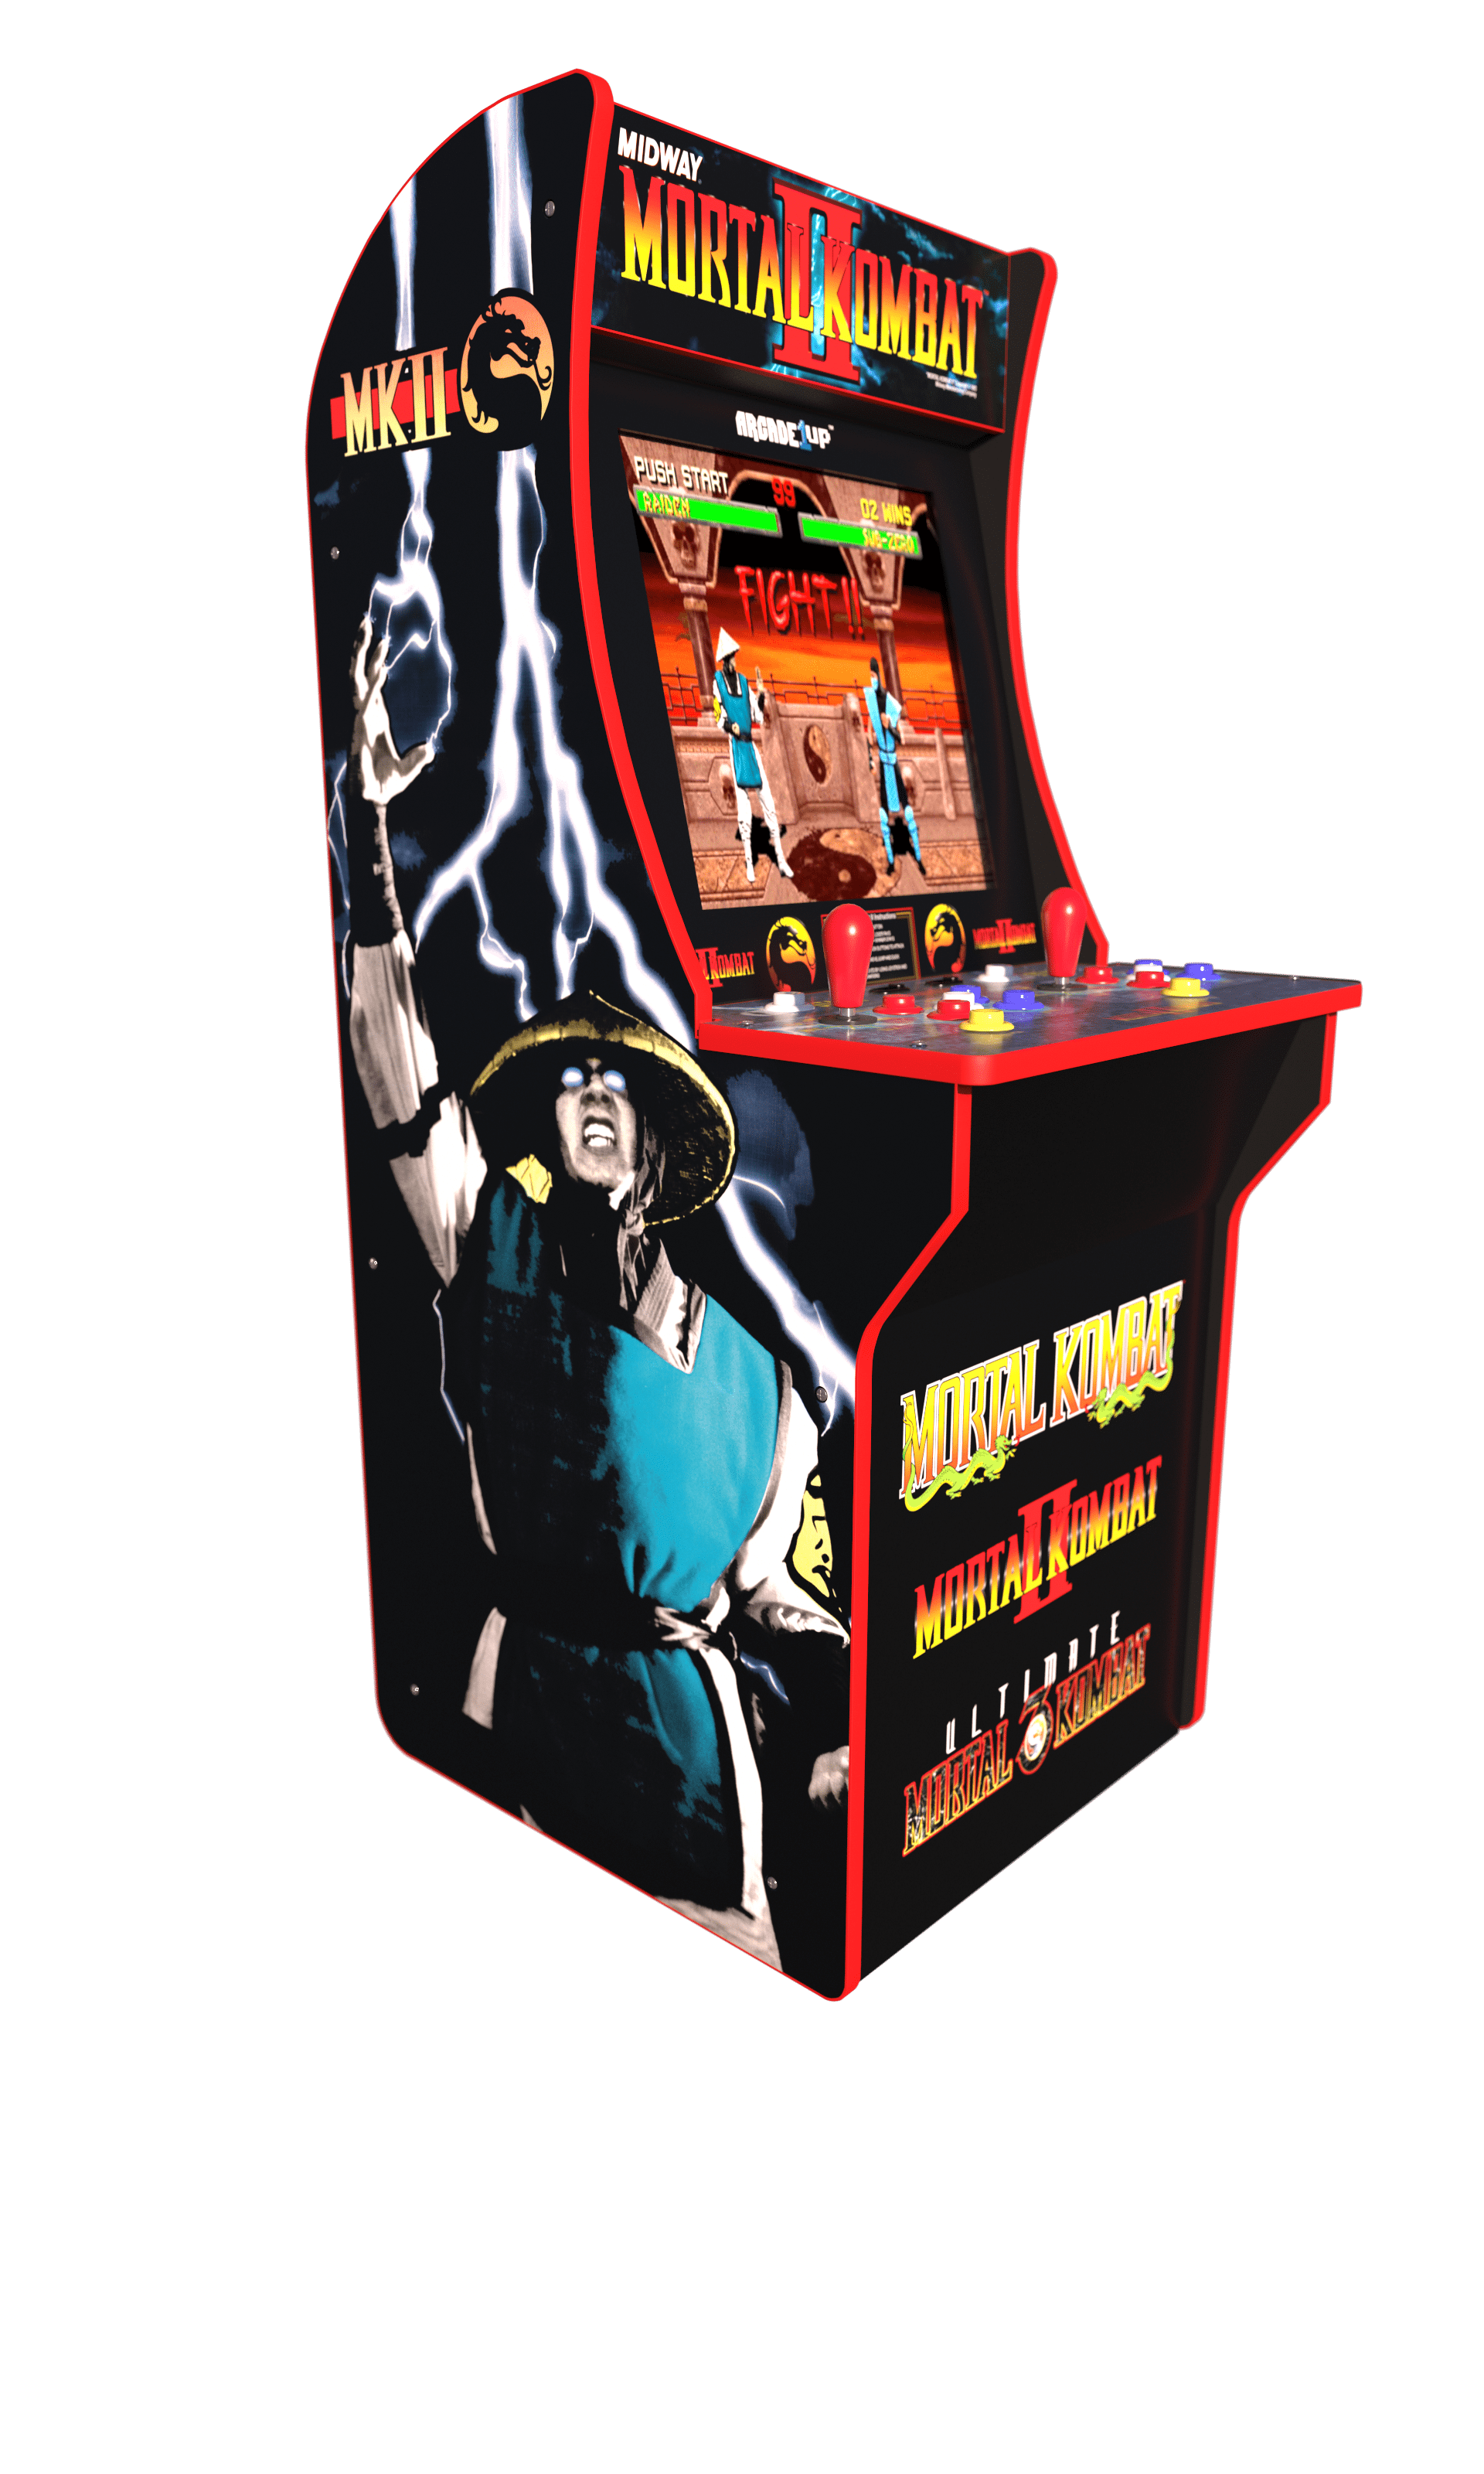 Mortal Kombat Arcade Machine, Arcade1UP, 4ft (Includes